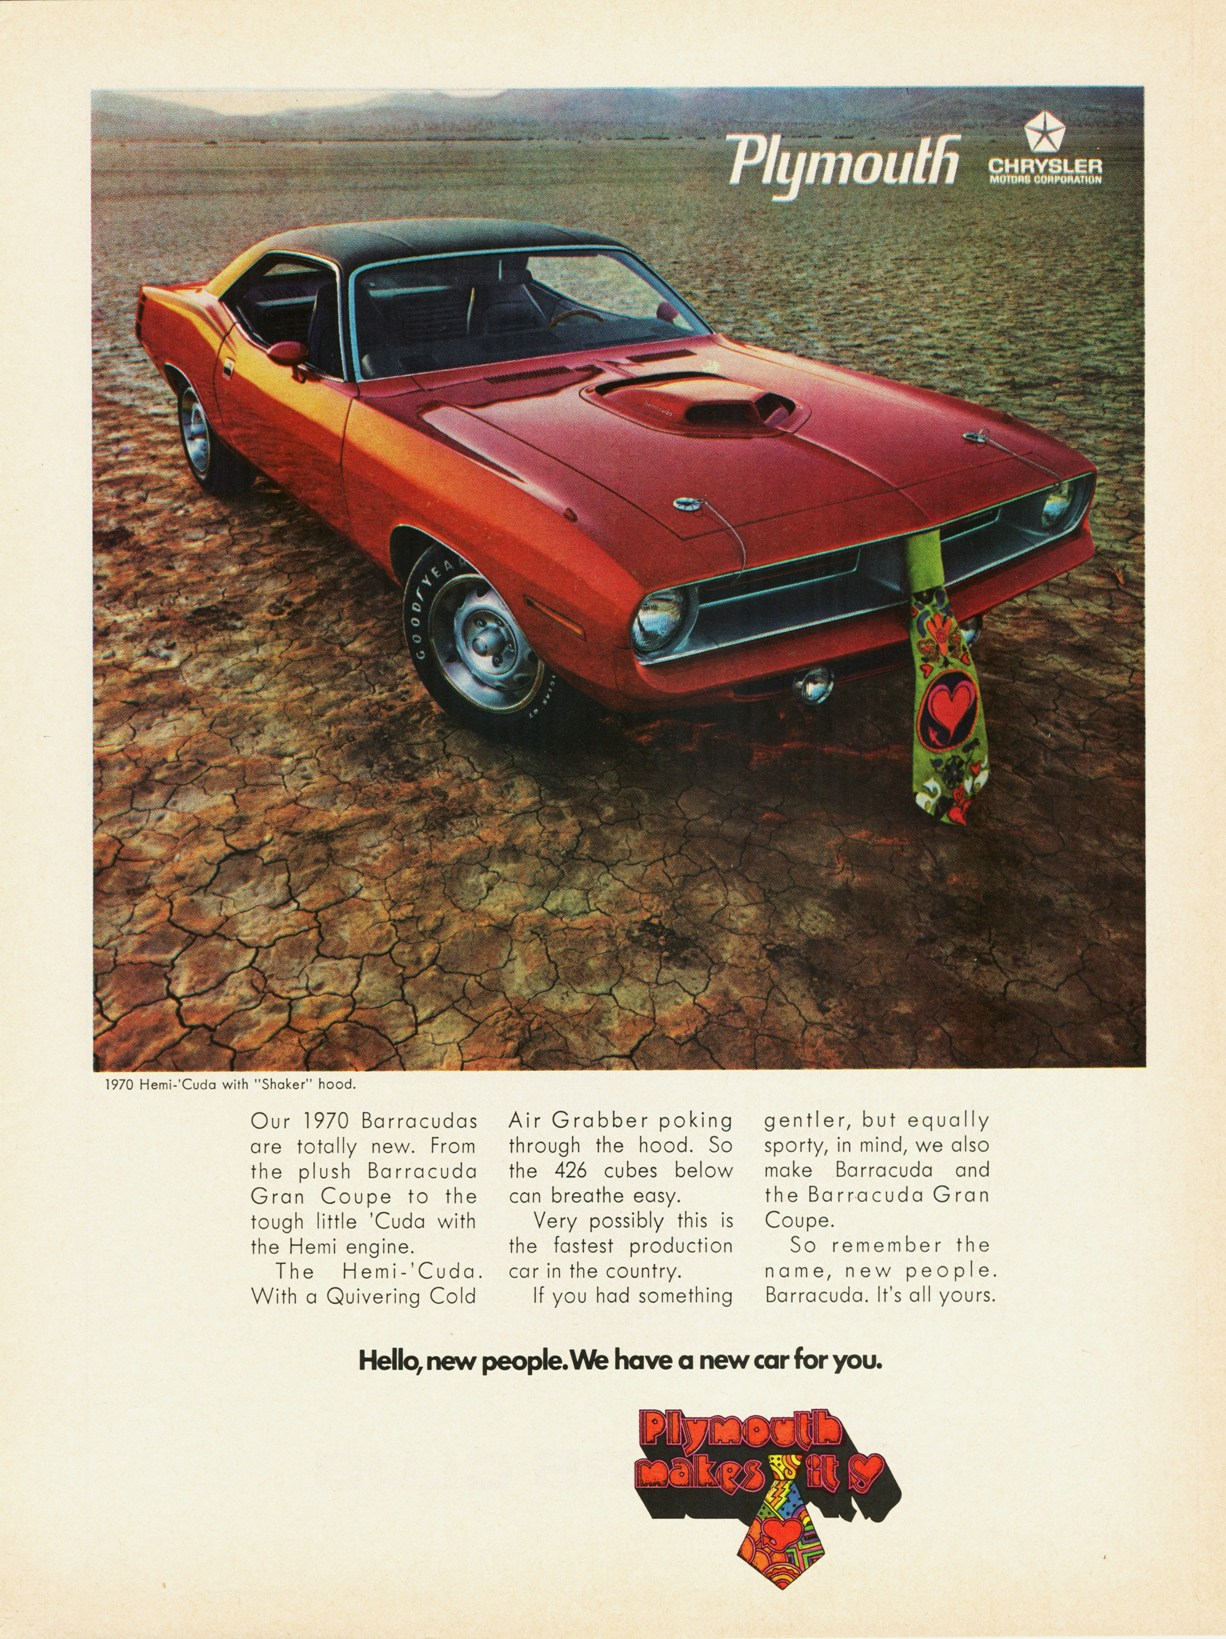 1970 20Plymouth 20Ad 02 furthermore Photos Dodge Colt 1970 73 24635 in addition Beautiful Kodak Advertisements From further Watch in addition Photos Of The British Army In Northern Ireland 1969 1979 27624. on 1970s ads